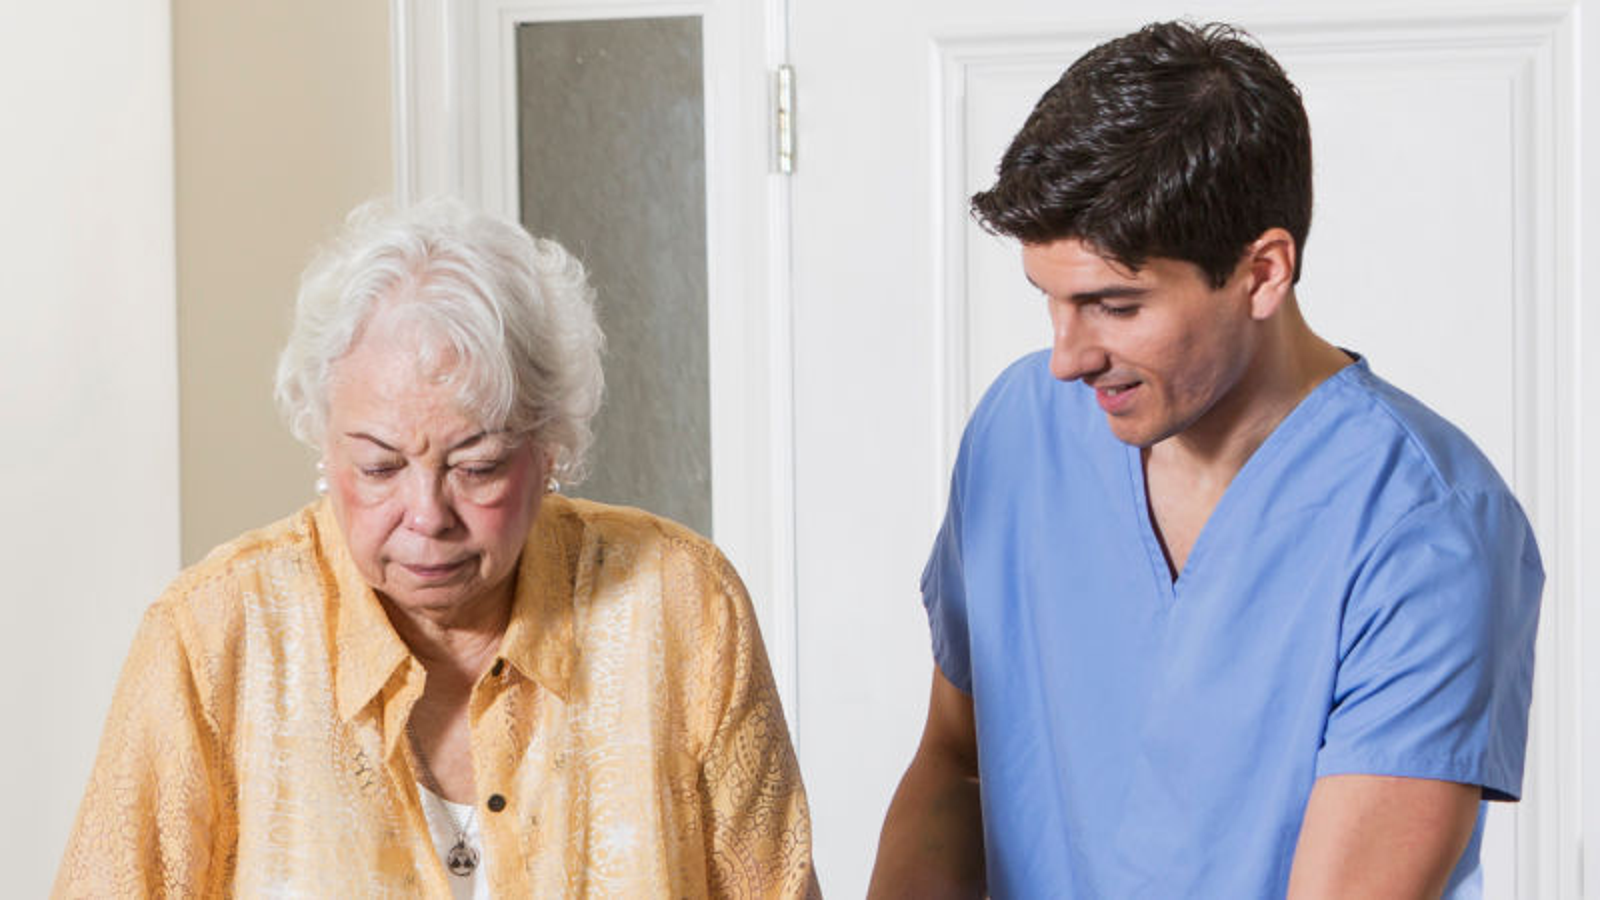 Family Unsure Why Grandmother's Caregiver Seems Like He Actually Enjoys Spending Time With Her